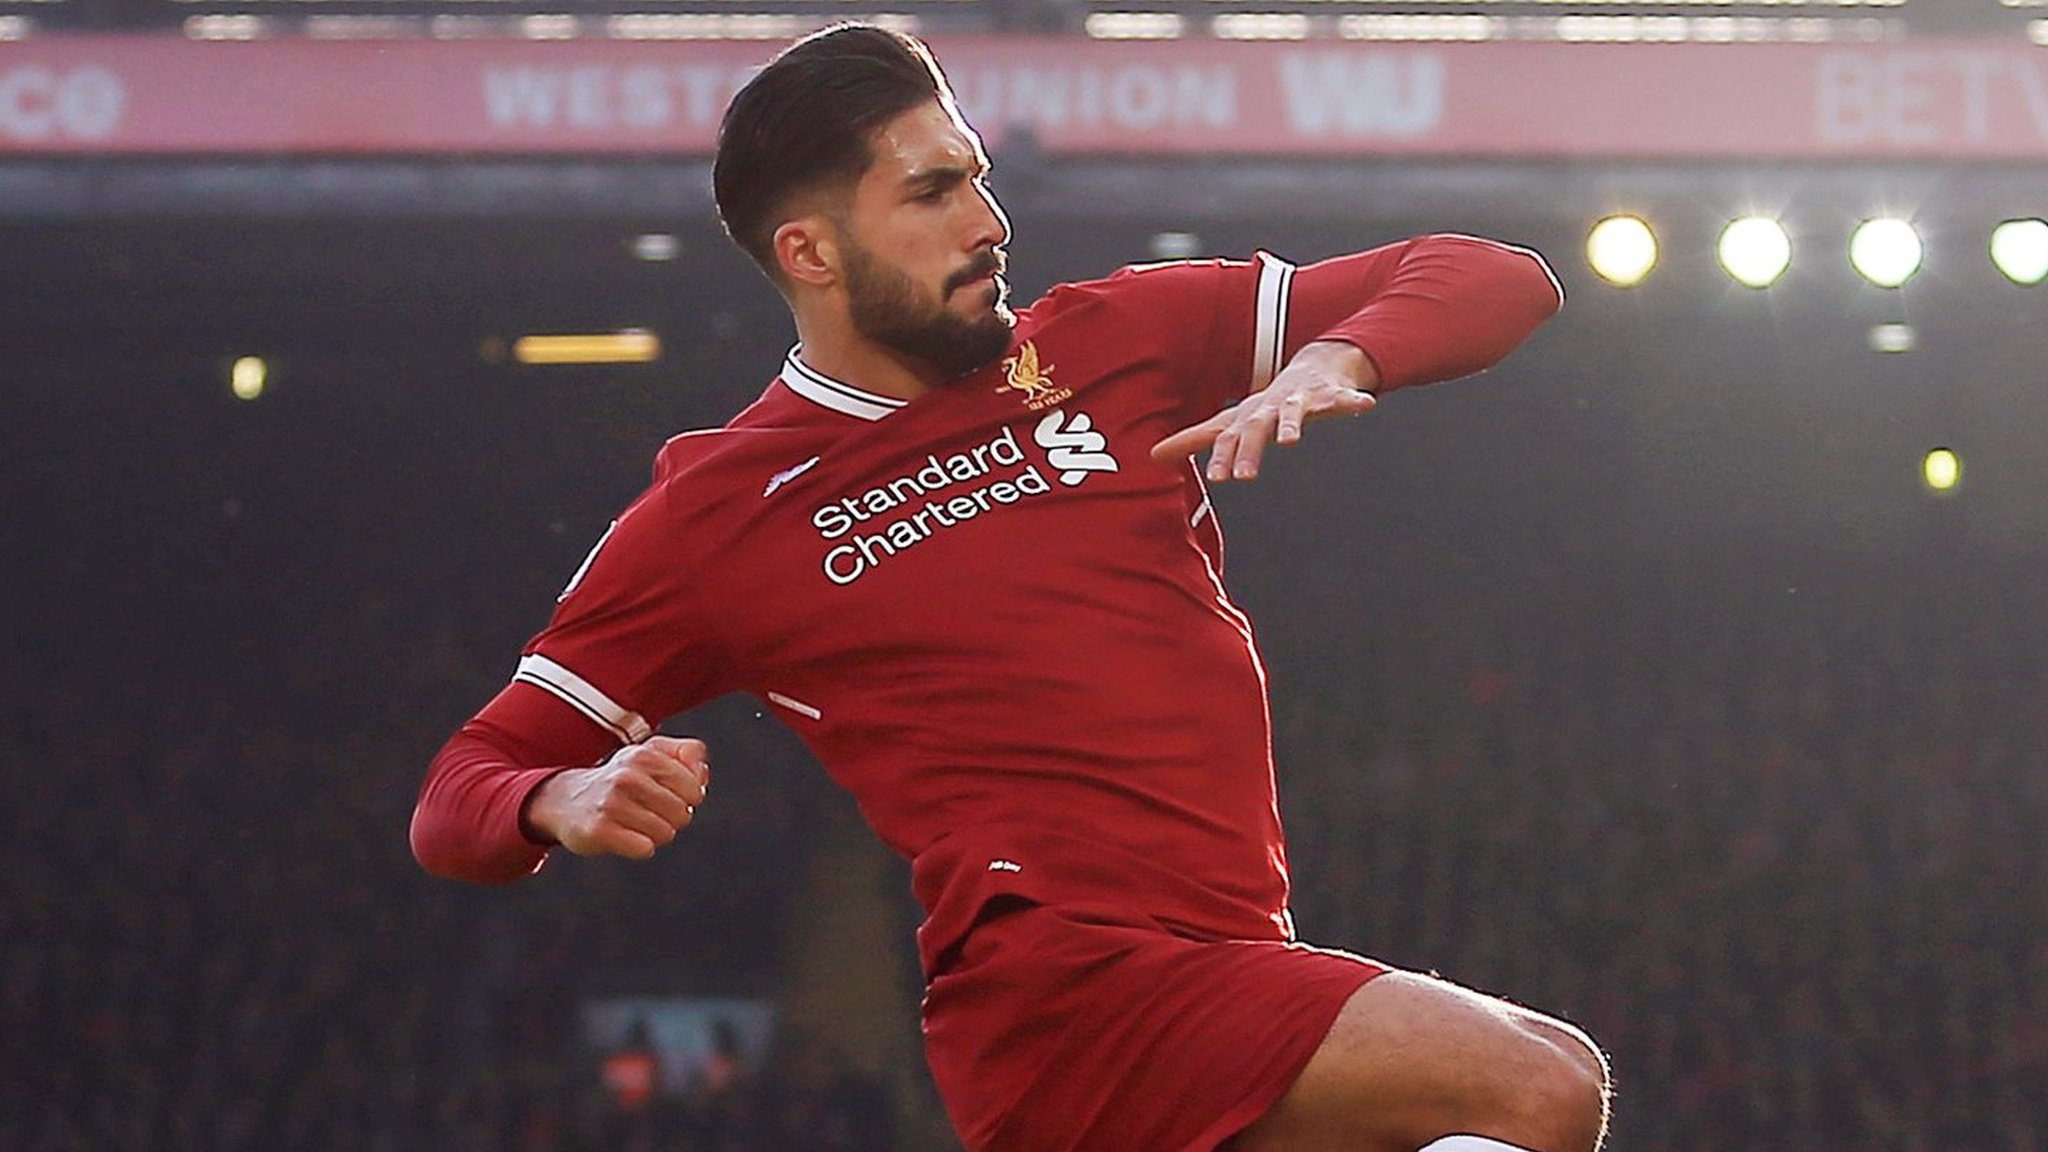 Emre Can: Liverpool midfielder could still feature this season despite back problem